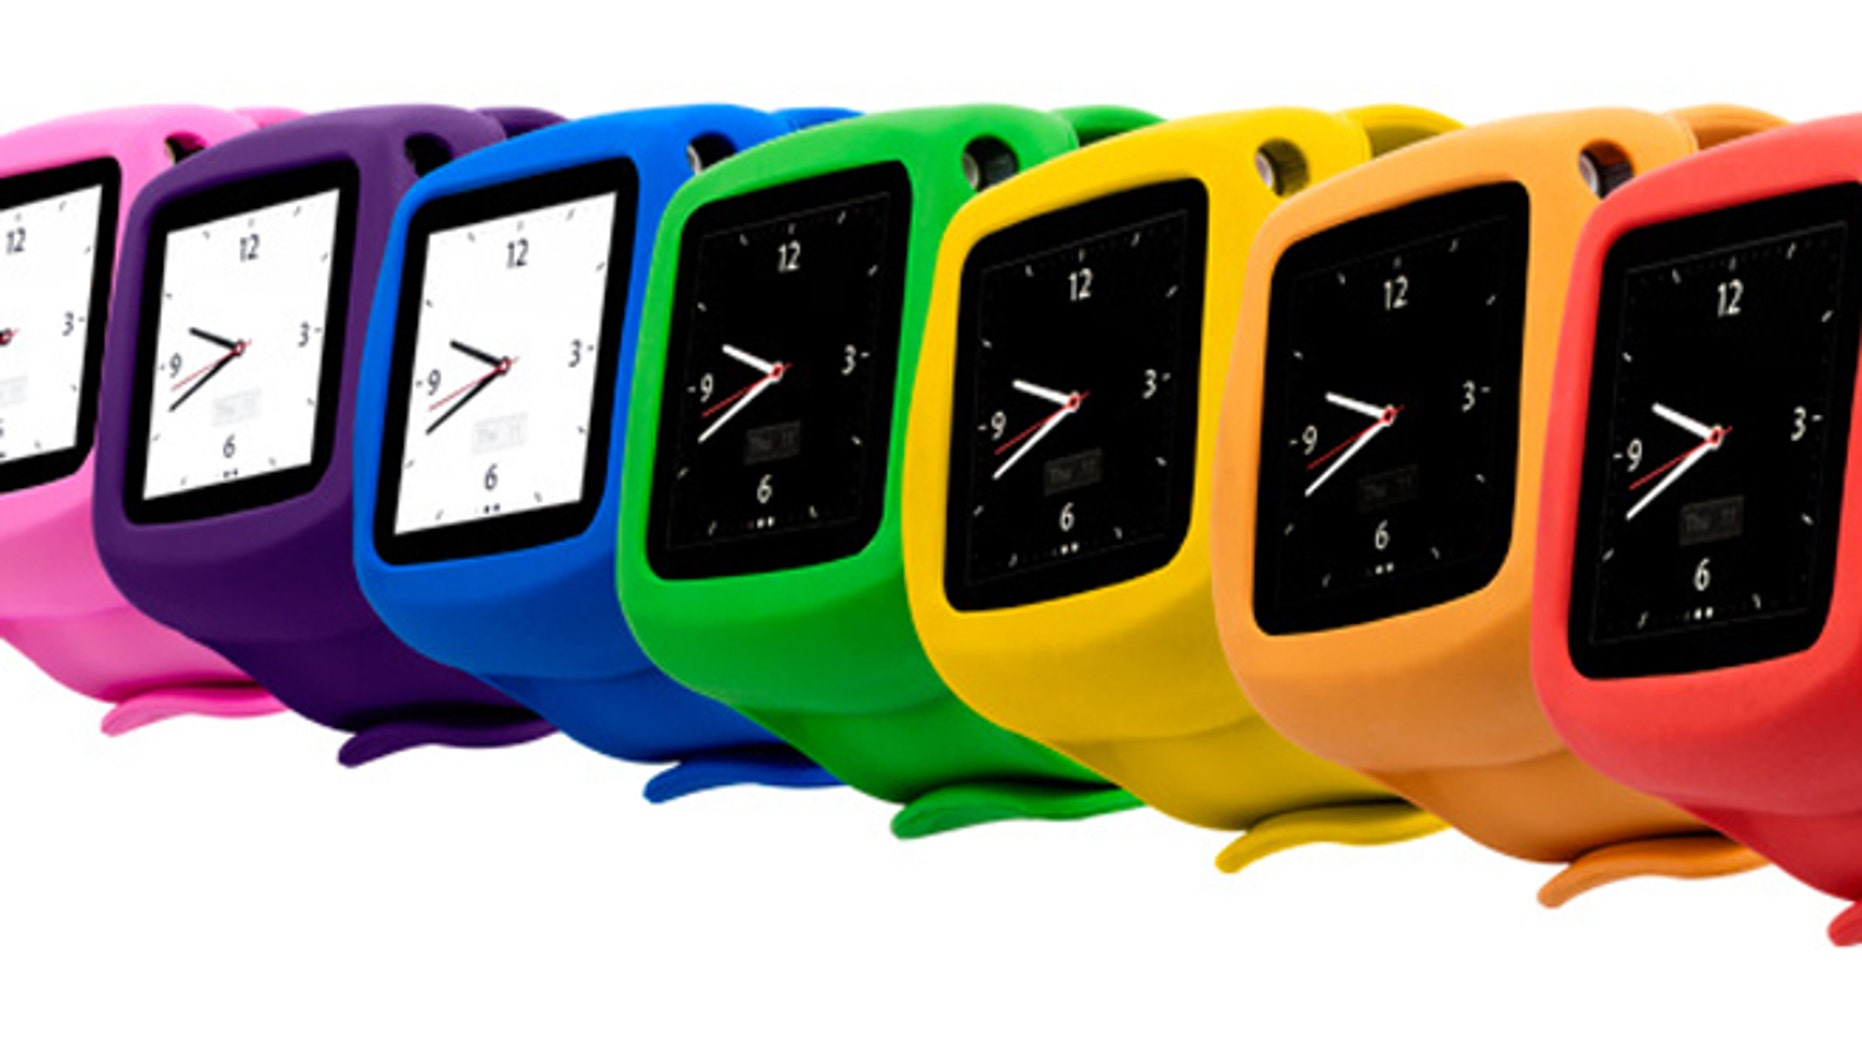 The Nano Slap watch by Griffin Technology turns an old iPod into an iWatch. Will Apple's rumored device look something like it?